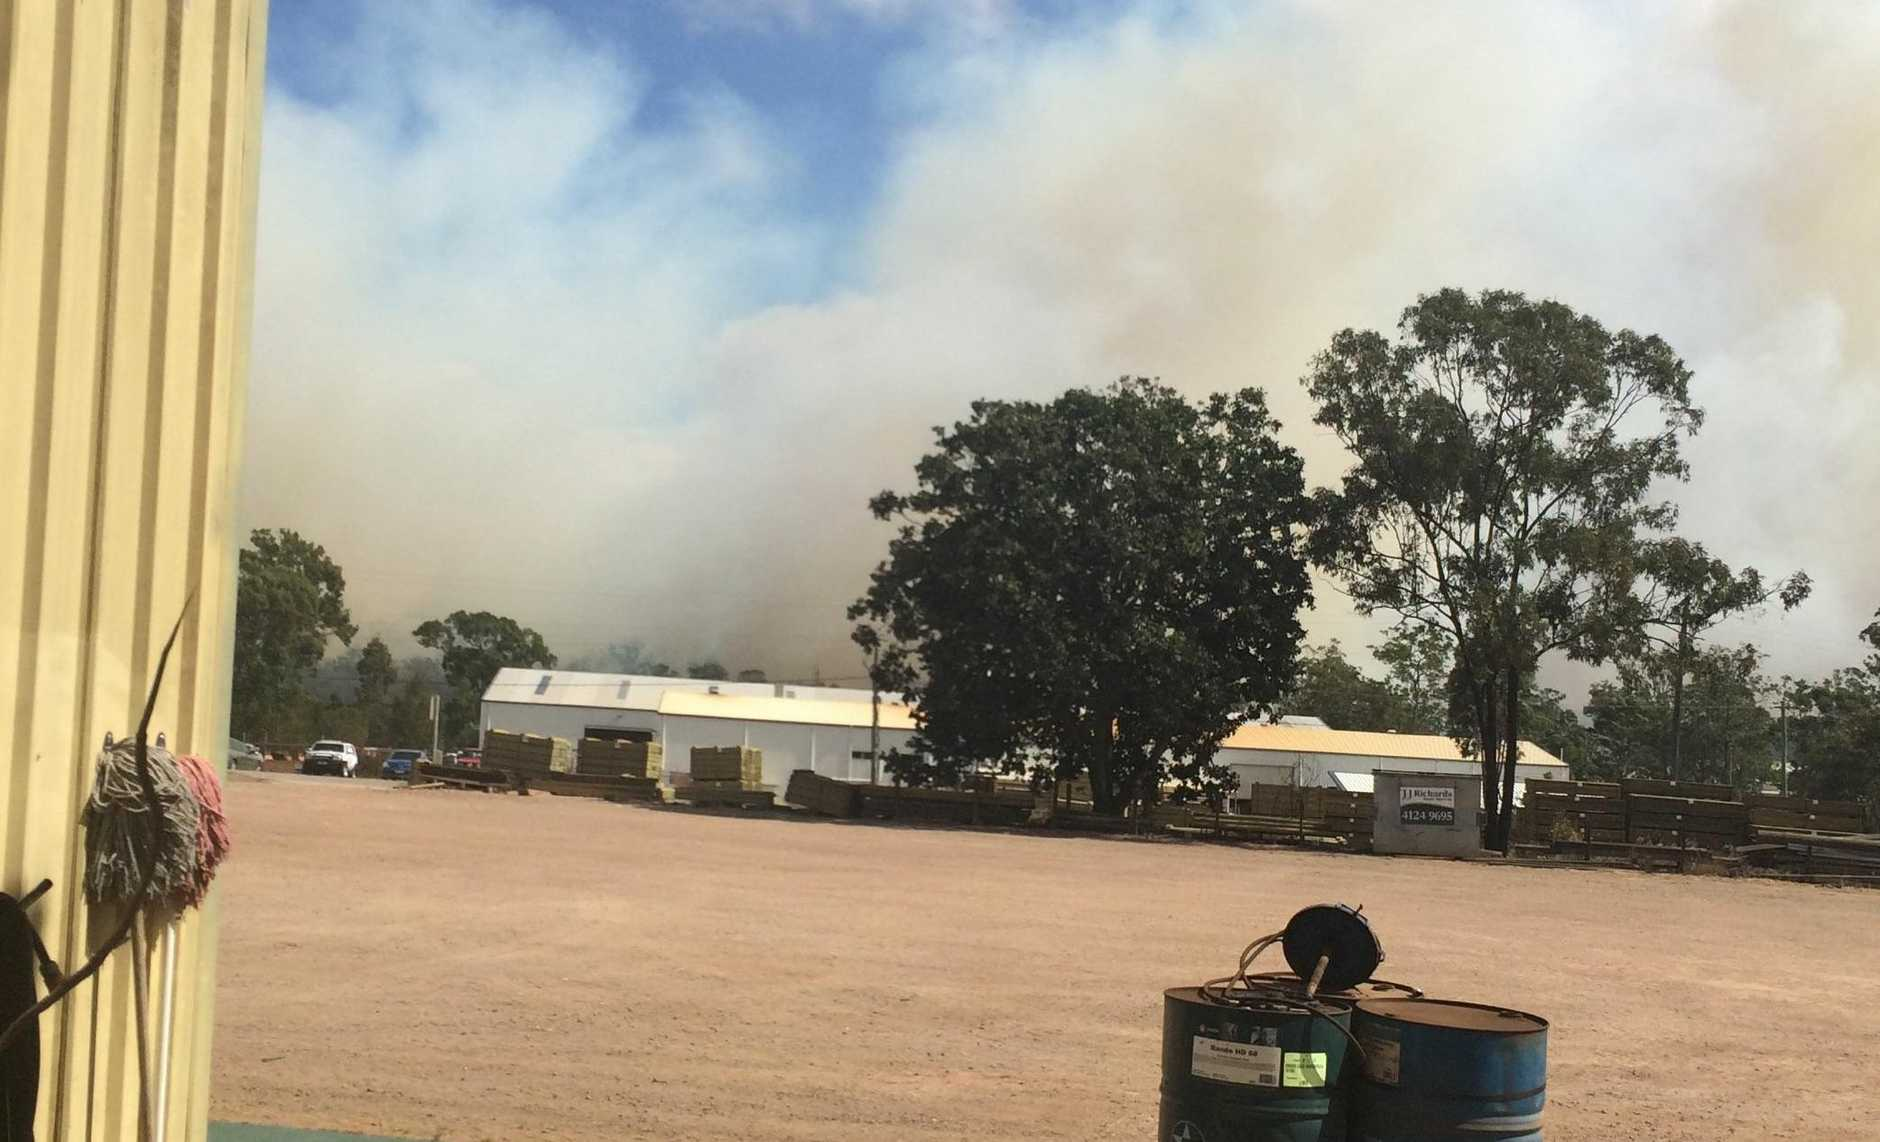 A fire is burning north of Maryborough. It has closed the Bruce Highway due to smoke.